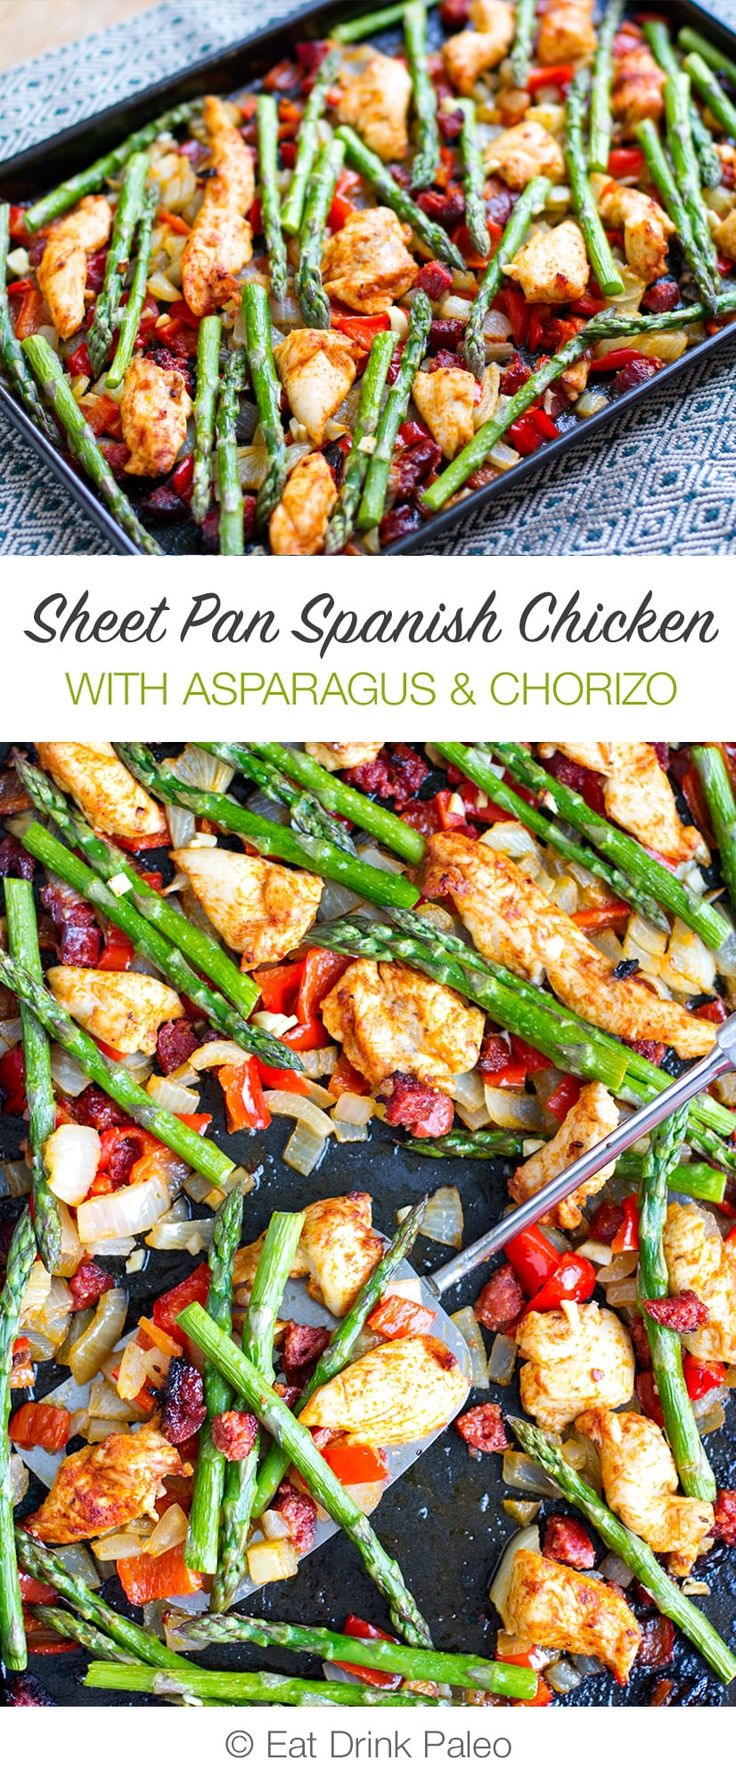 Sheet Pan Roasted Asparagus Chicken & Chorizo (Spanish Style) - Whole30, Paleo, Primal Low-Carb, Keto, Gluten-free